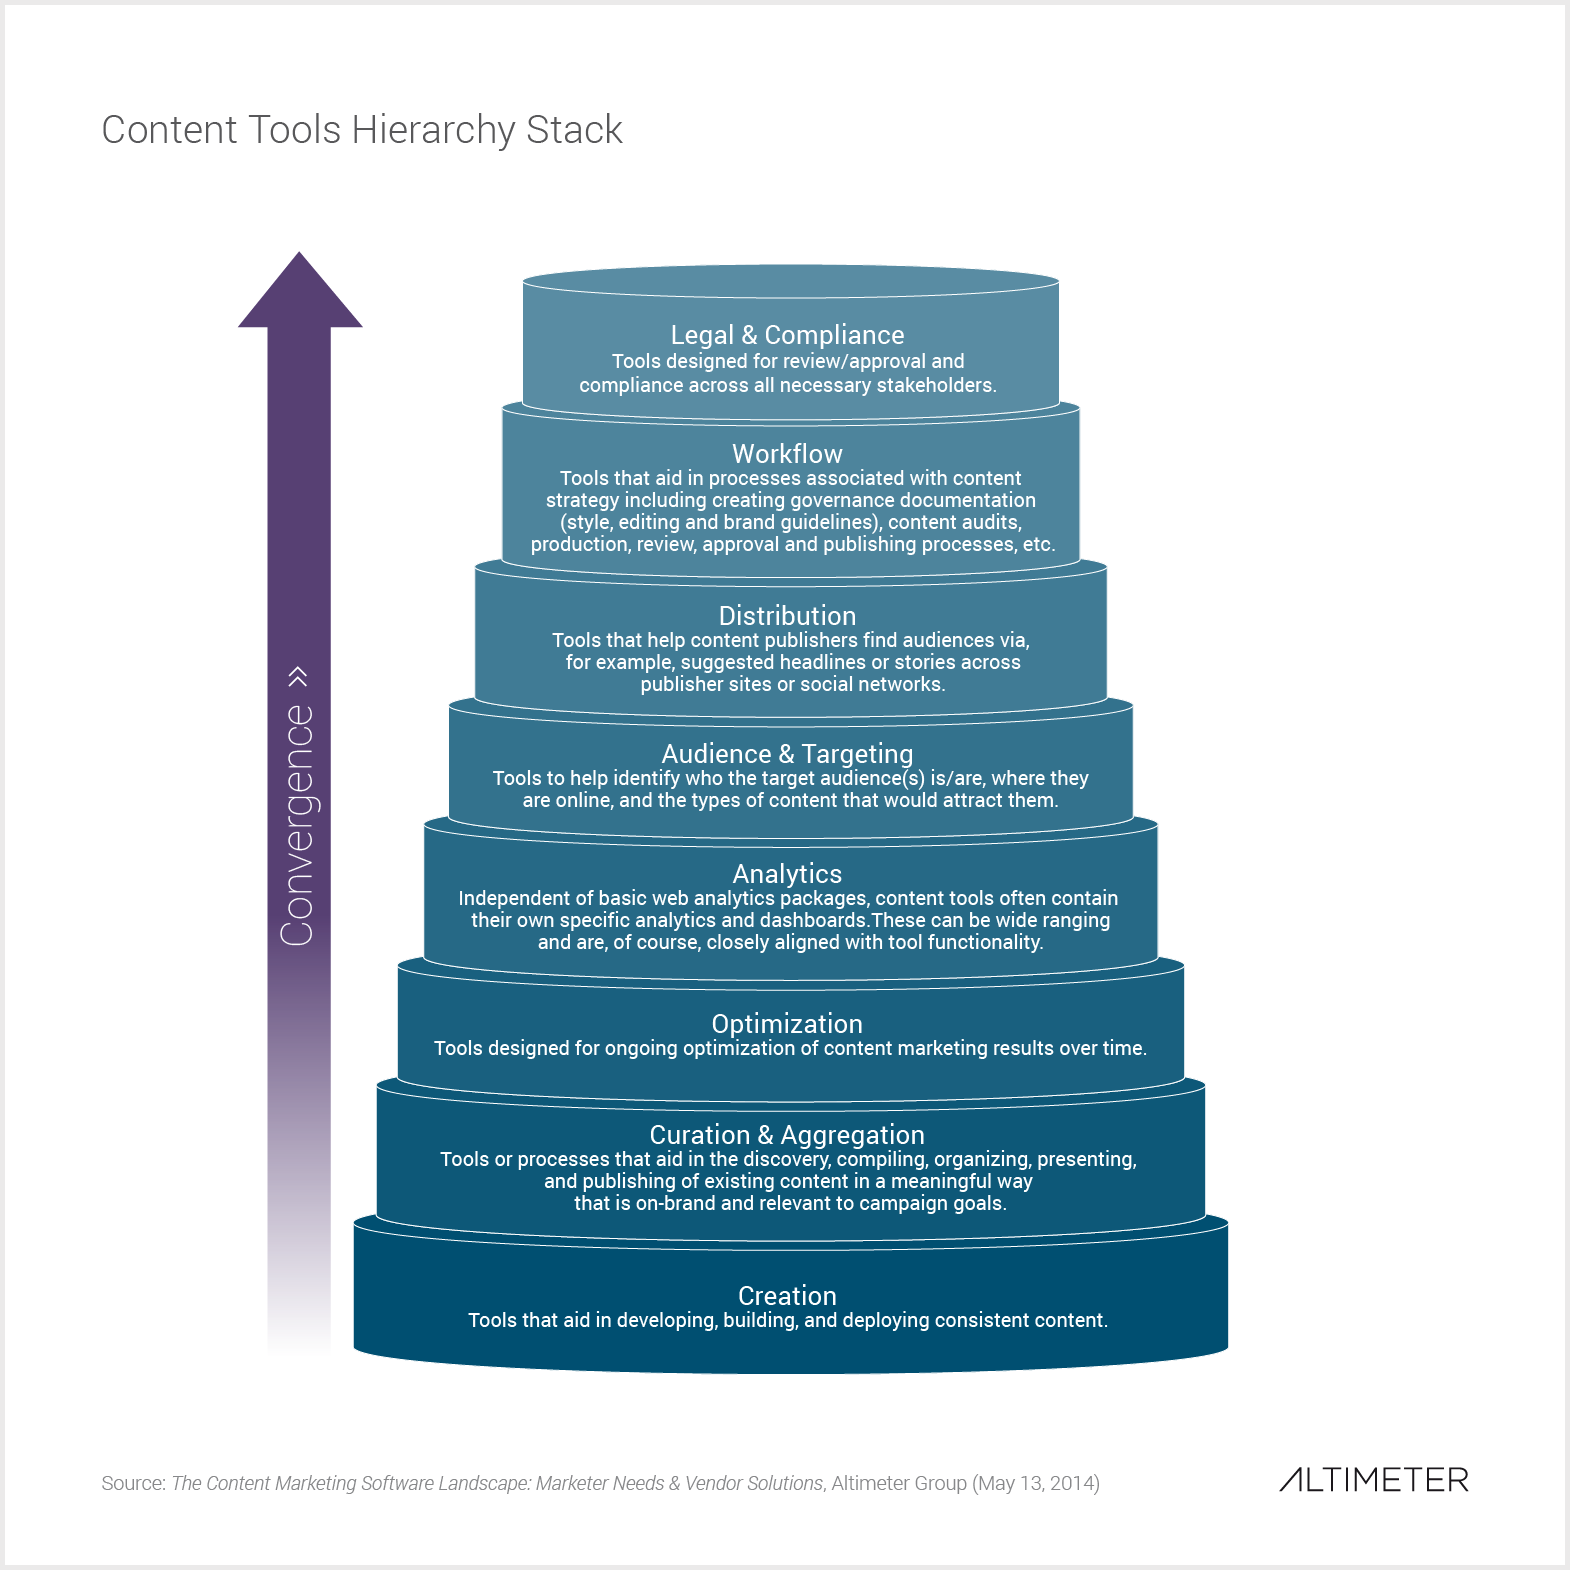 Content Tools Hierarchy Stack